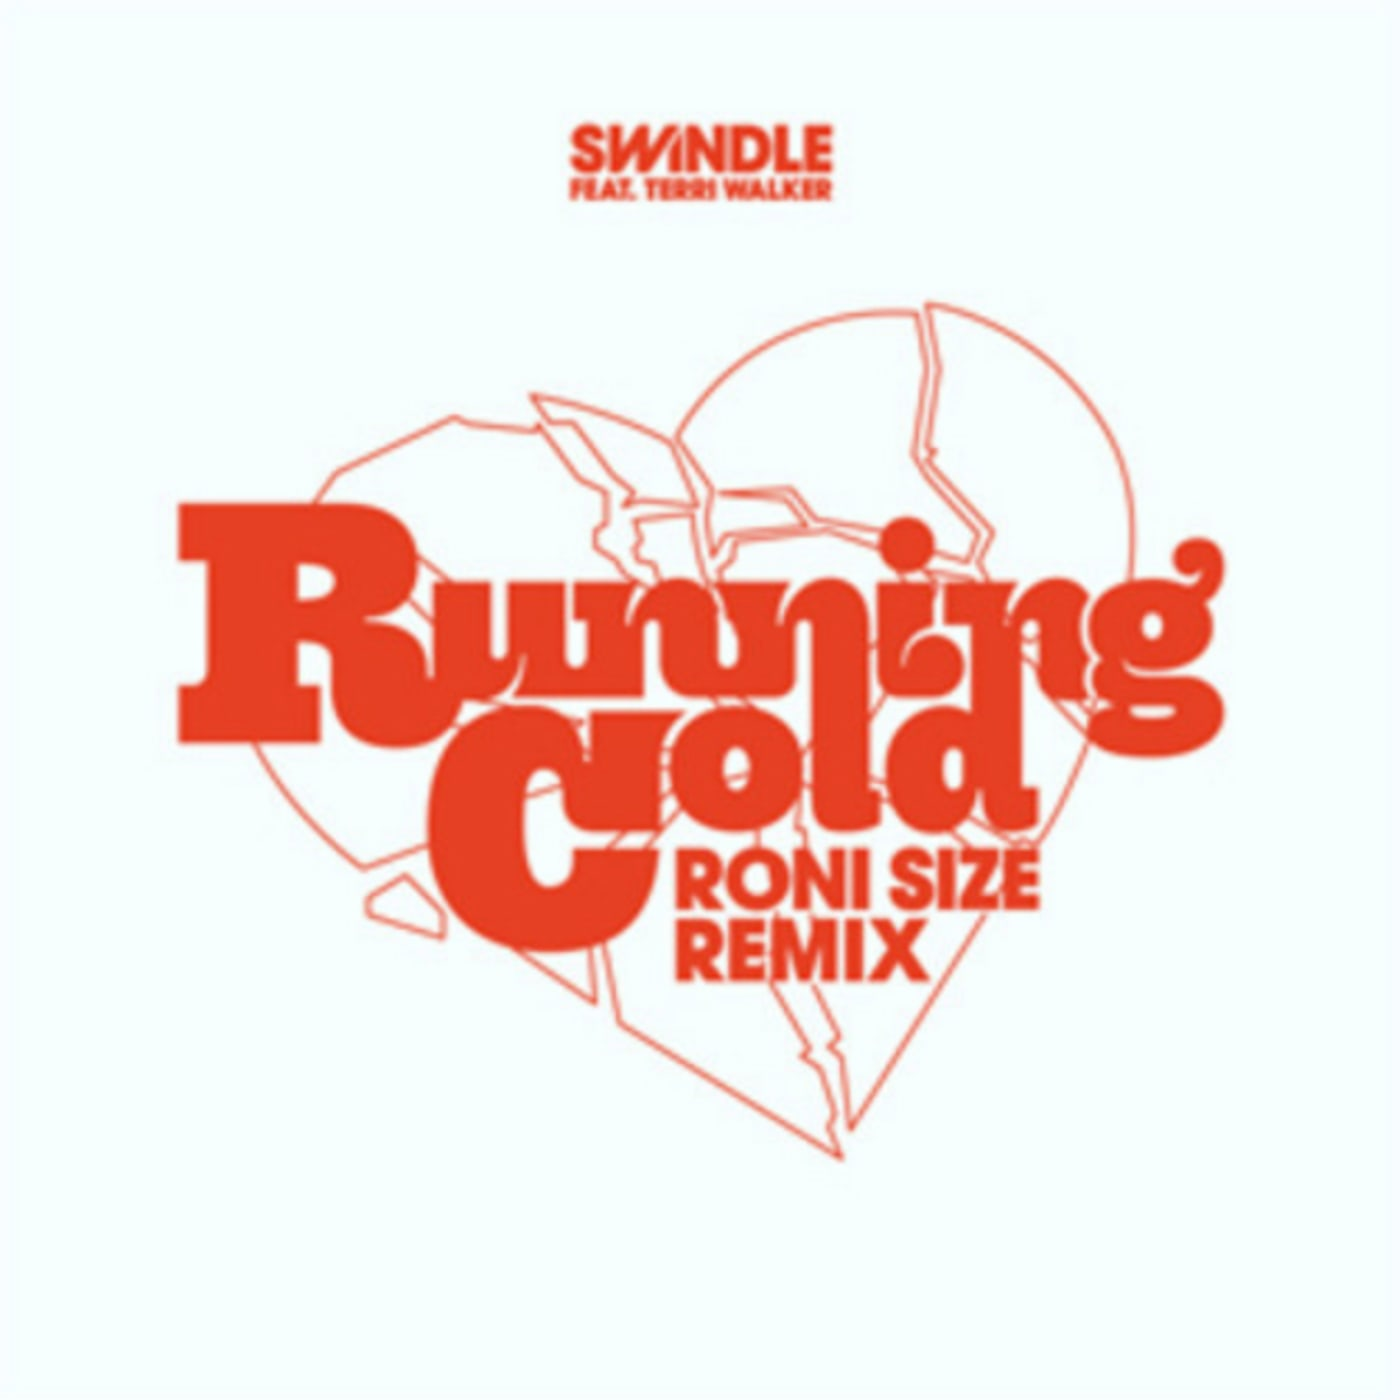 swindle running cold roni size rmx